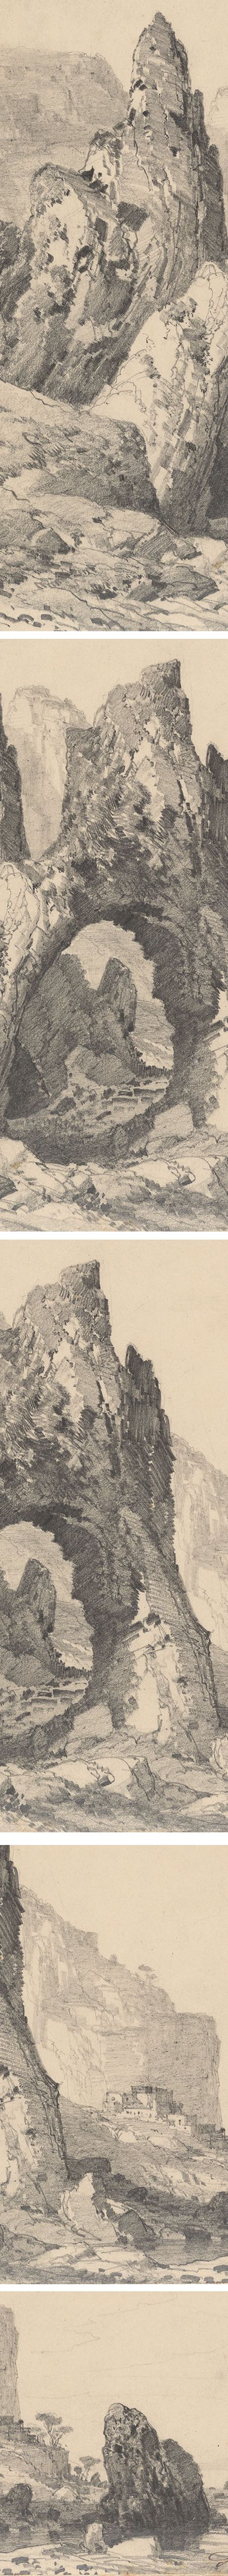 A Natural Stone Arch Beside the Sea, details, Carlo Ferrario pencil drawing